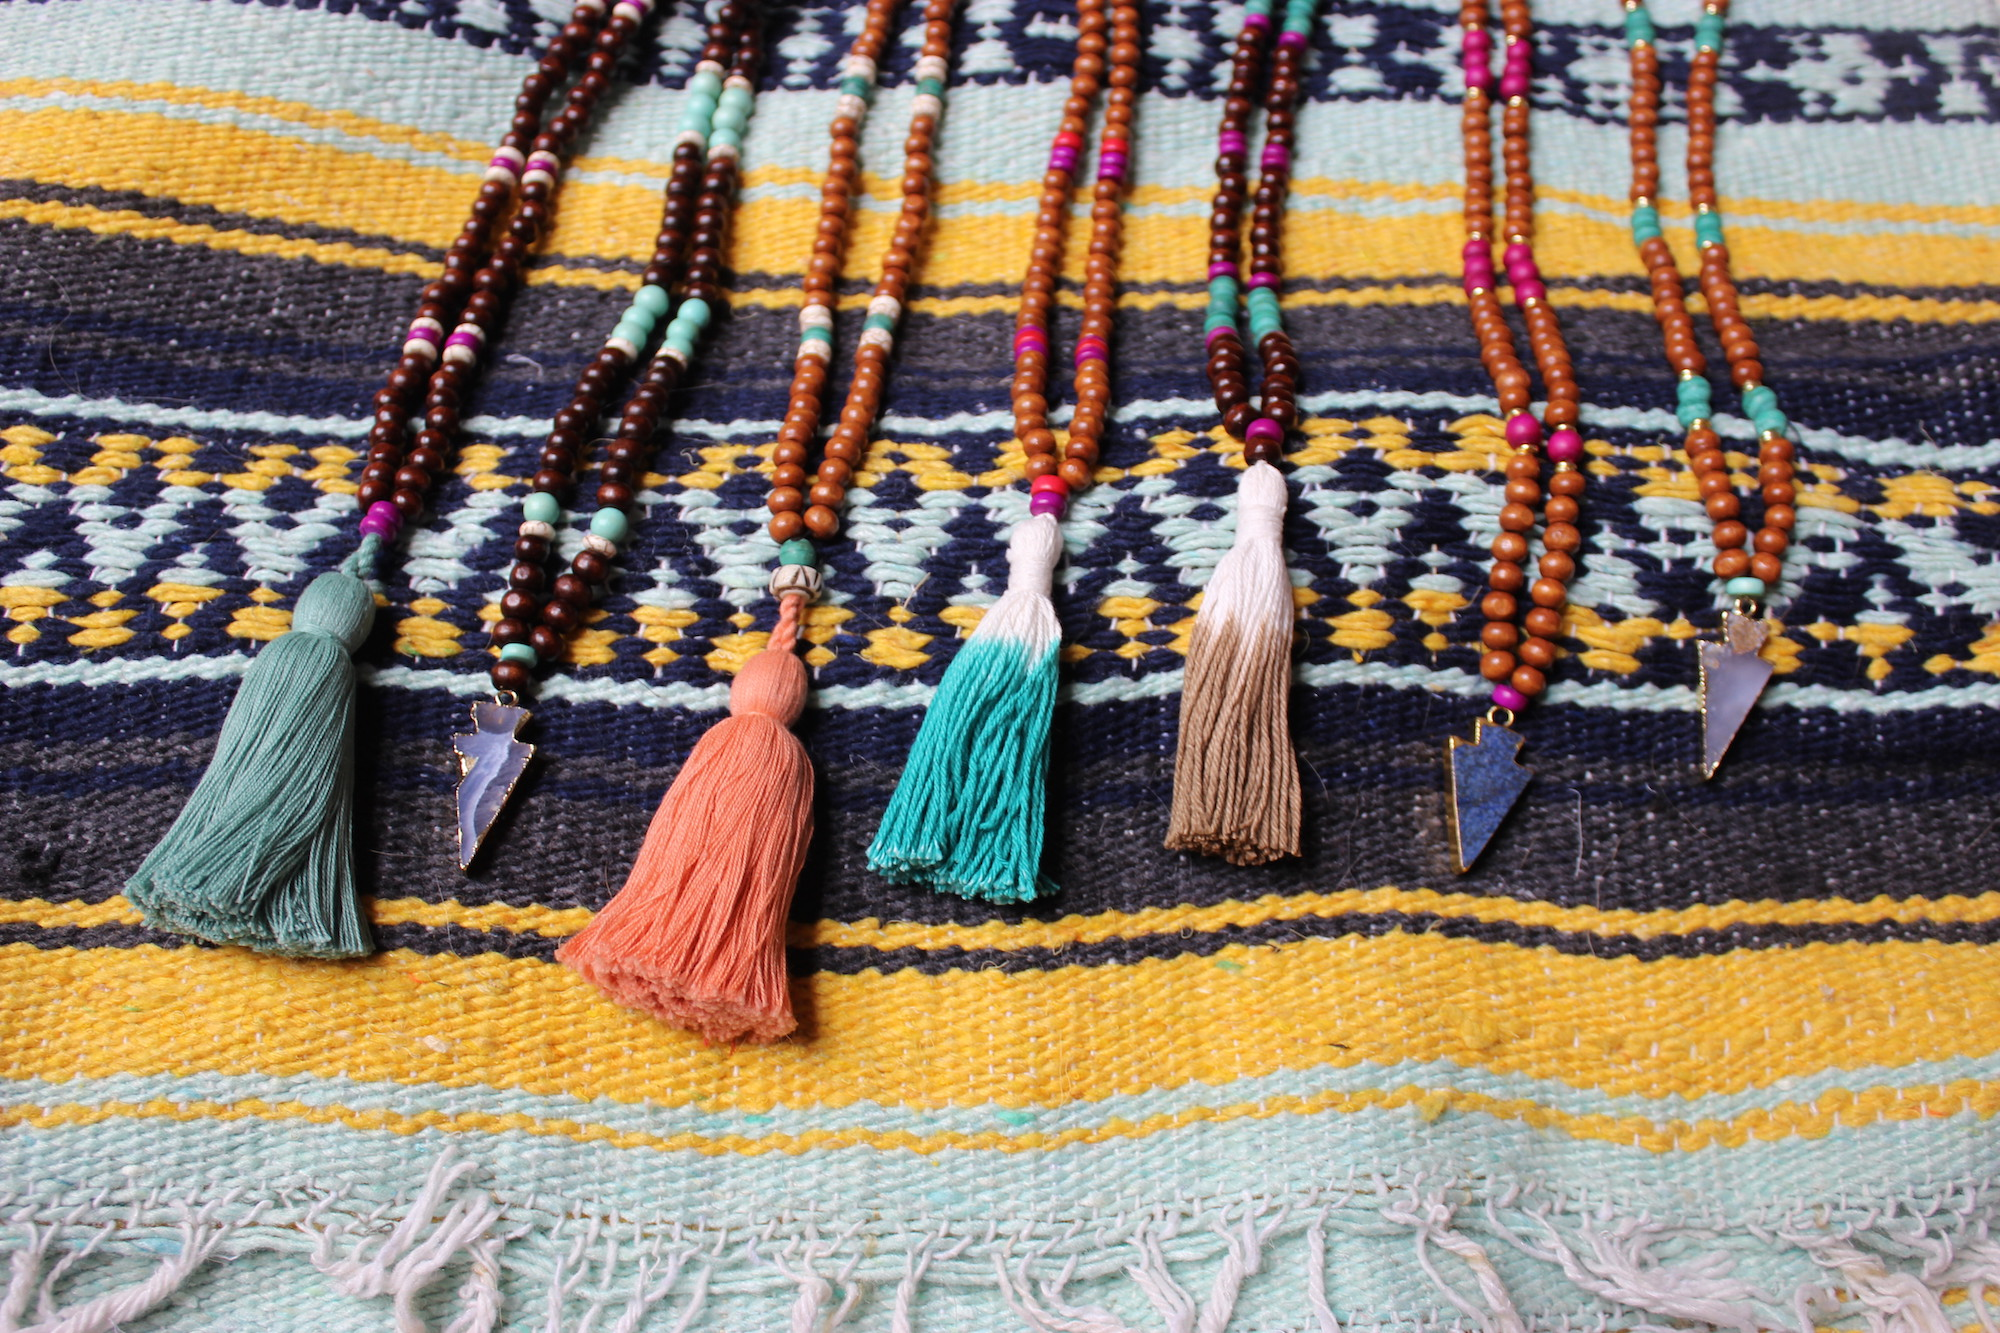 Tassel Necklaces and Arrowhead Necklaces | Just Peachy Blog